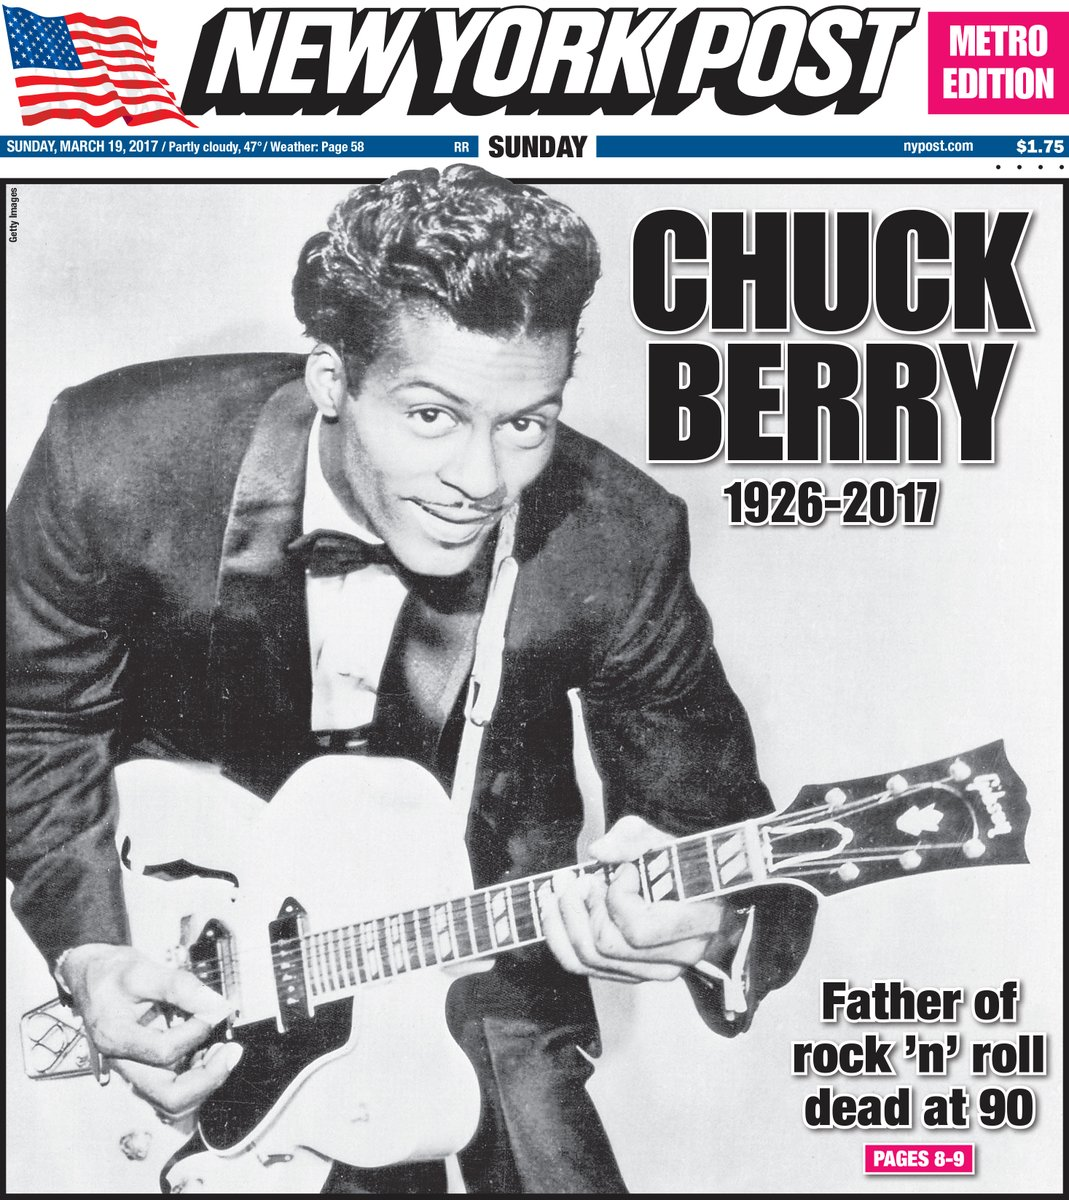 c7qez wxgaavev5?w=590&h=662 rock & roll legend chuck berry dies at 90 pundit from another planet